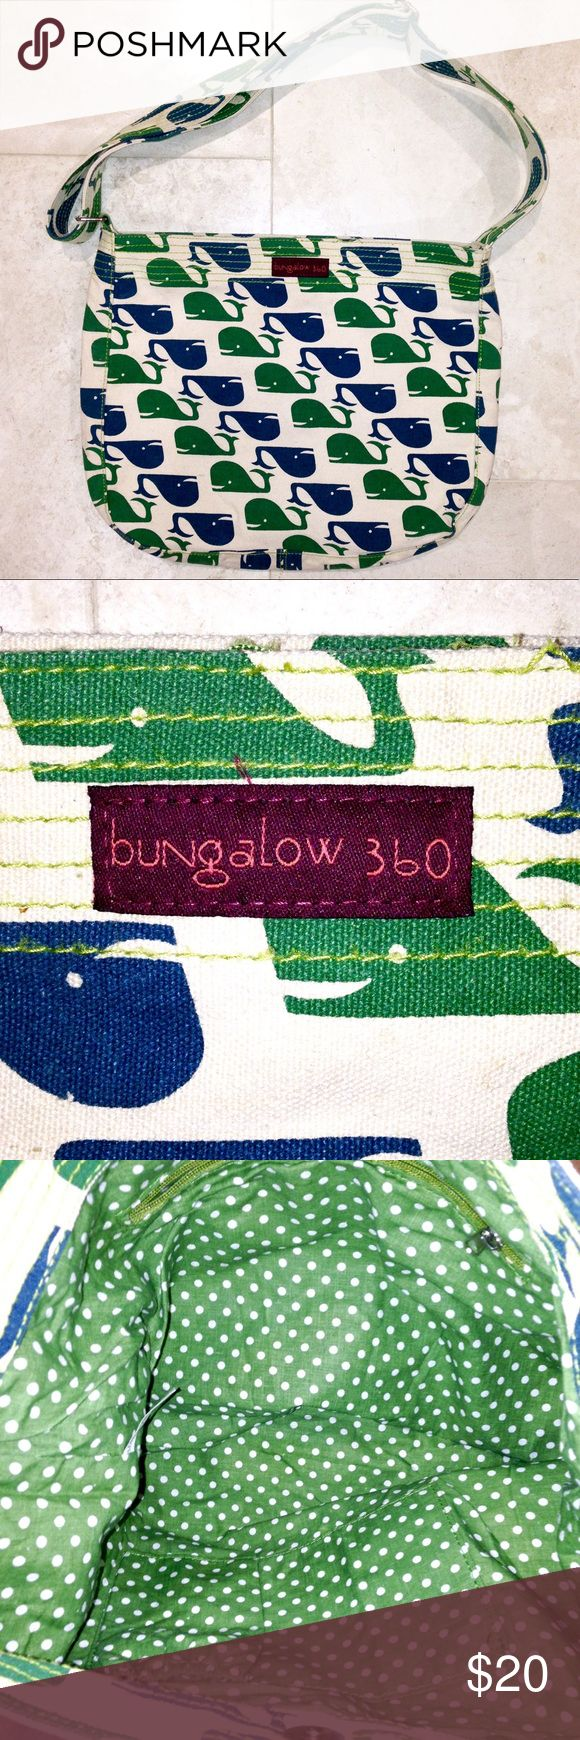 💥CLEARANCE!!!💥▪️Bungalow 360 Purse▪️ ✔️10% OFF Bundles Plus FREE SHIPPING!✔️ Bungalow 360 Purse in VERY GOOD condition. Super cute whale design on a canvas bag. No rips, tears or stains. My prices fluctuate often for sales & specials, so catch your favorite items when prices are low. Thank you for shopping my closet. Mahalo!🤙🏼♥️ Bungalow 360 Bags